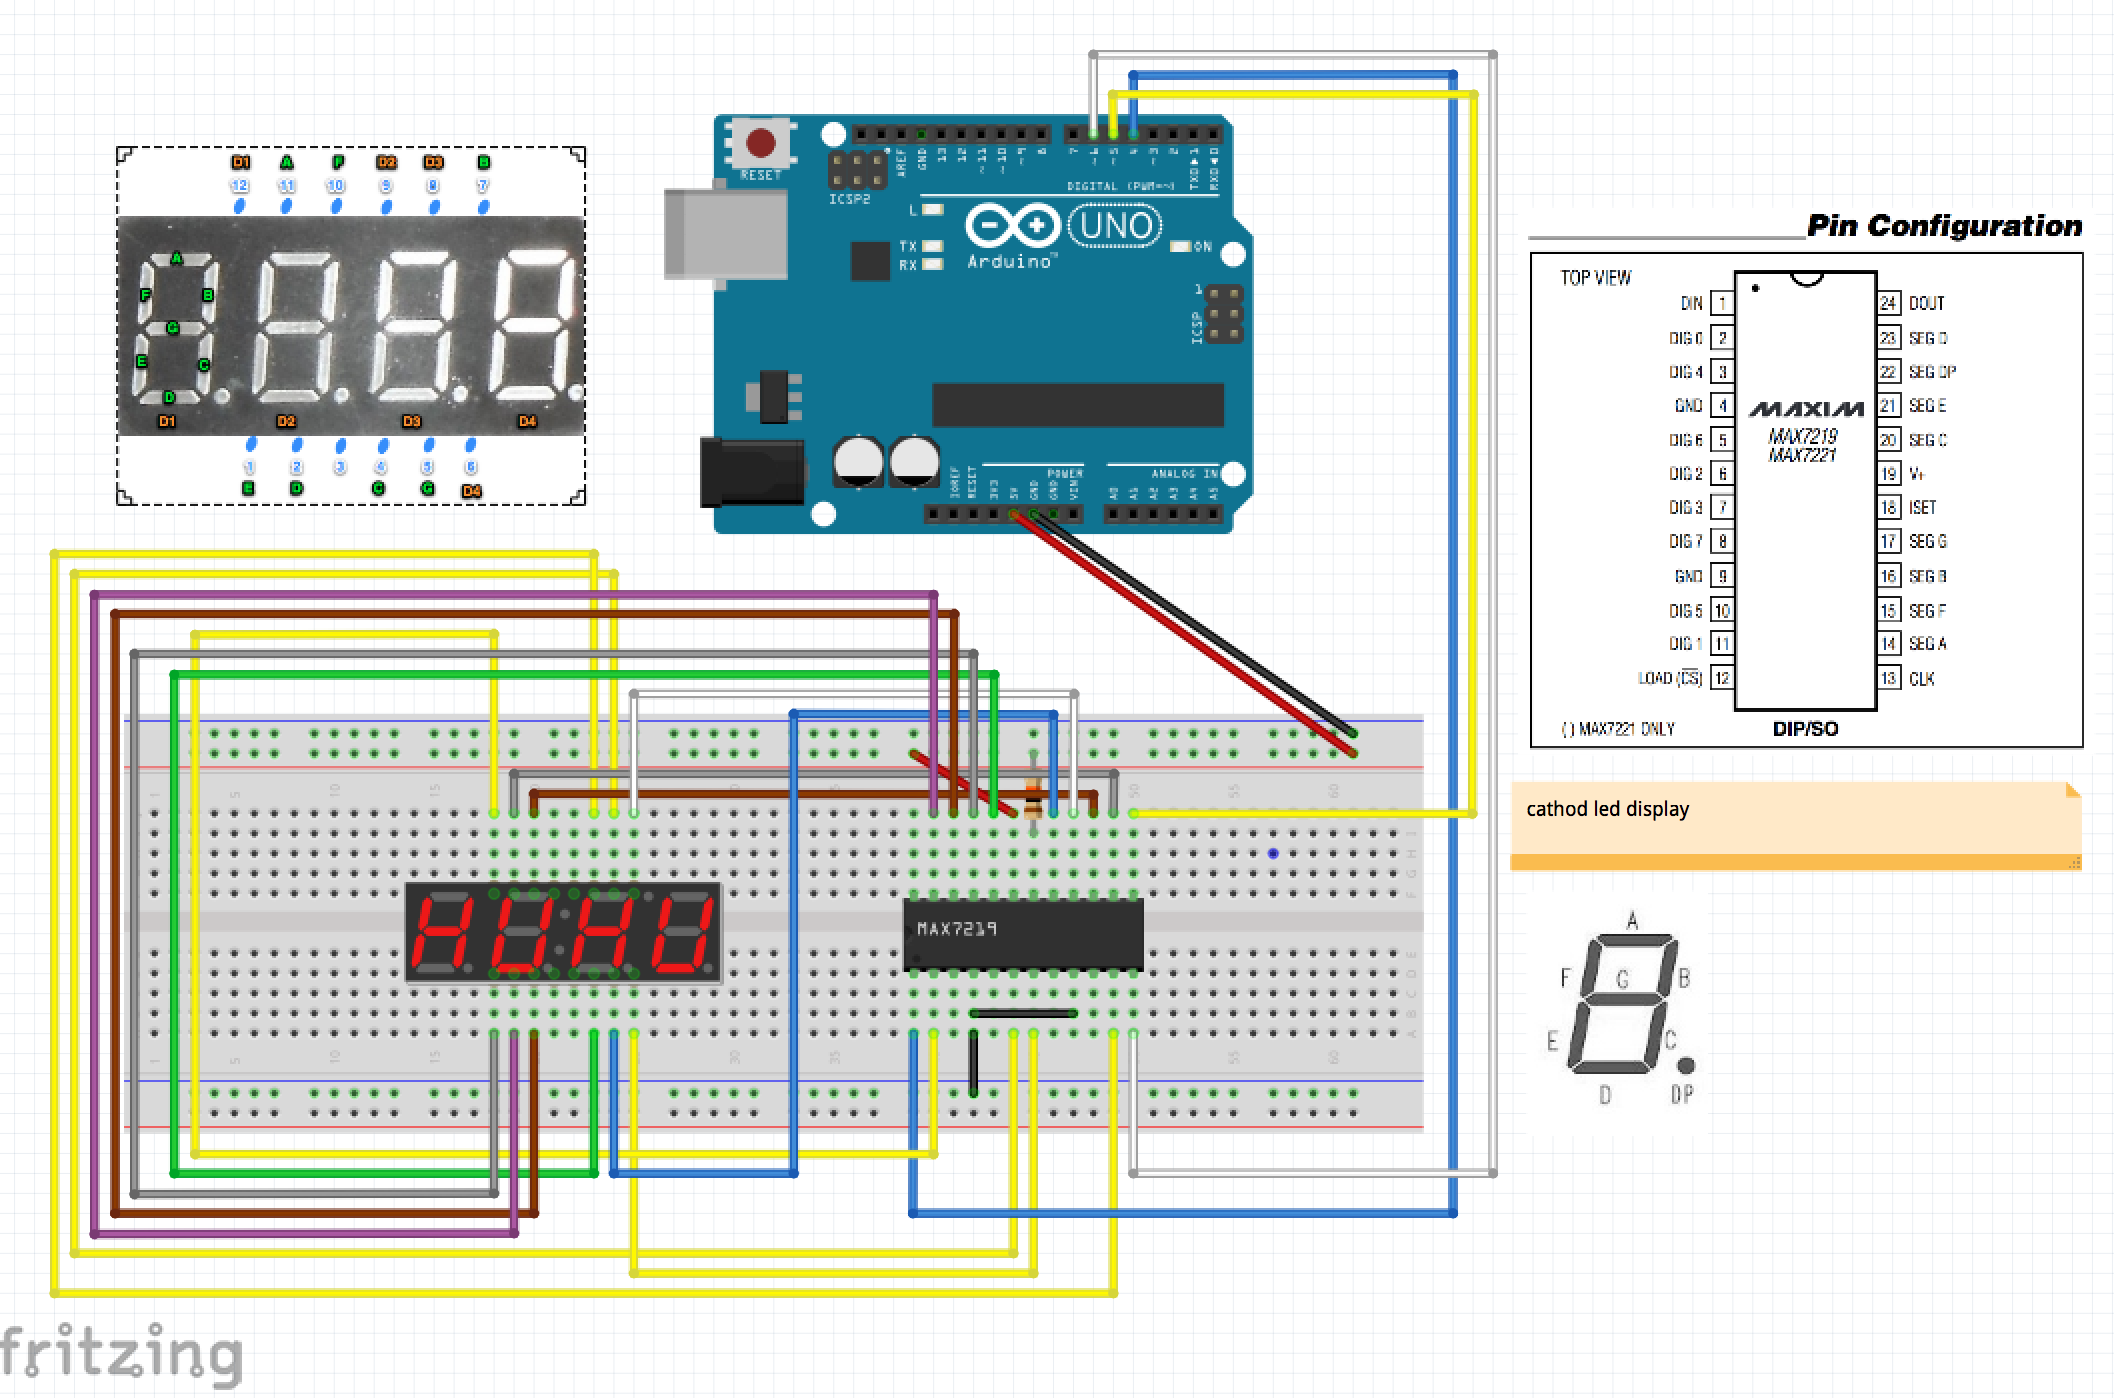 Arduino Max 7219 Cng Basic Circuit Led 7 Segment Displays Logic Diagram One 72xx Can Control Maximum Of 64 Leds Technology Articles